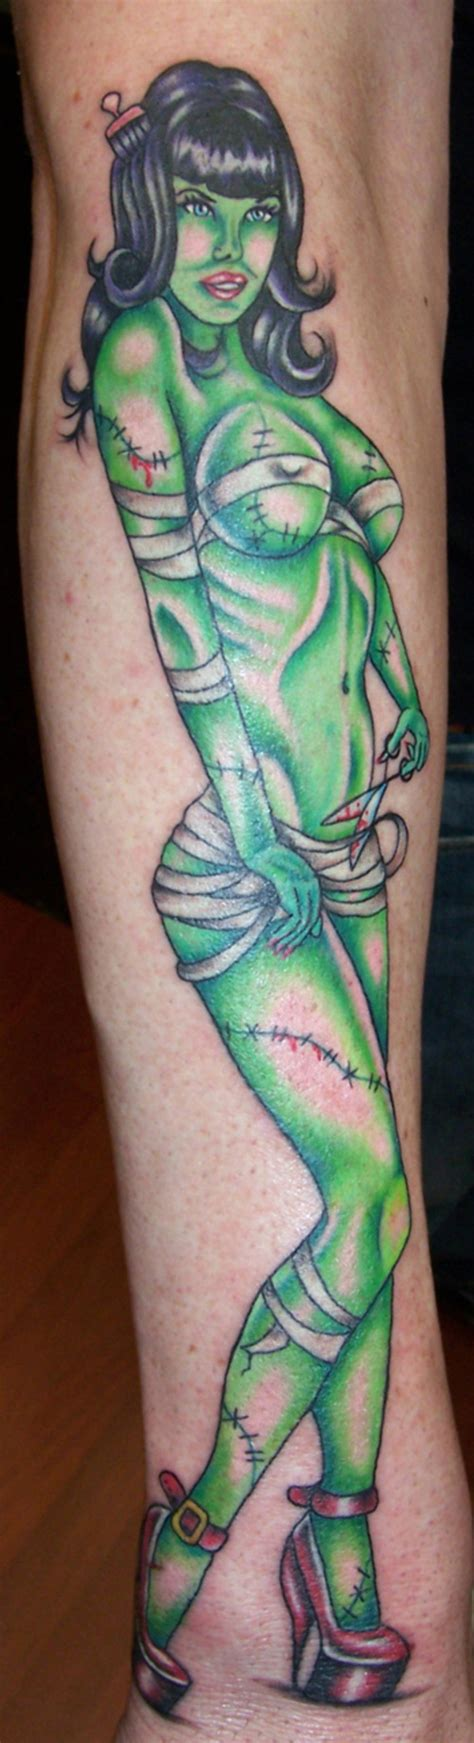 hot zombie tattoo bettie page pin up tattoo picture at checkoutmyink com